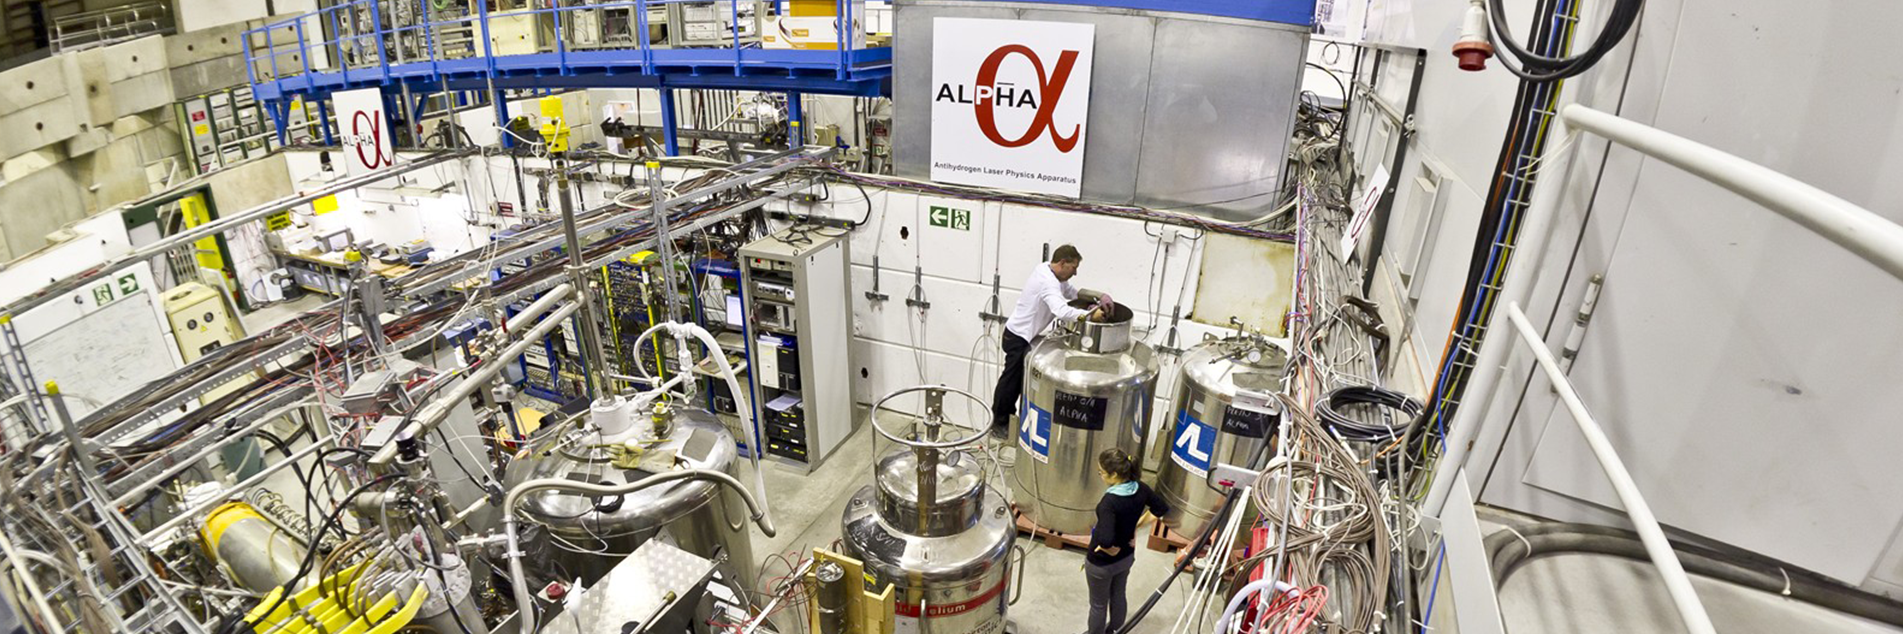 Momose and colleagues conducted the experiment using the ALPHA detector at CERN.